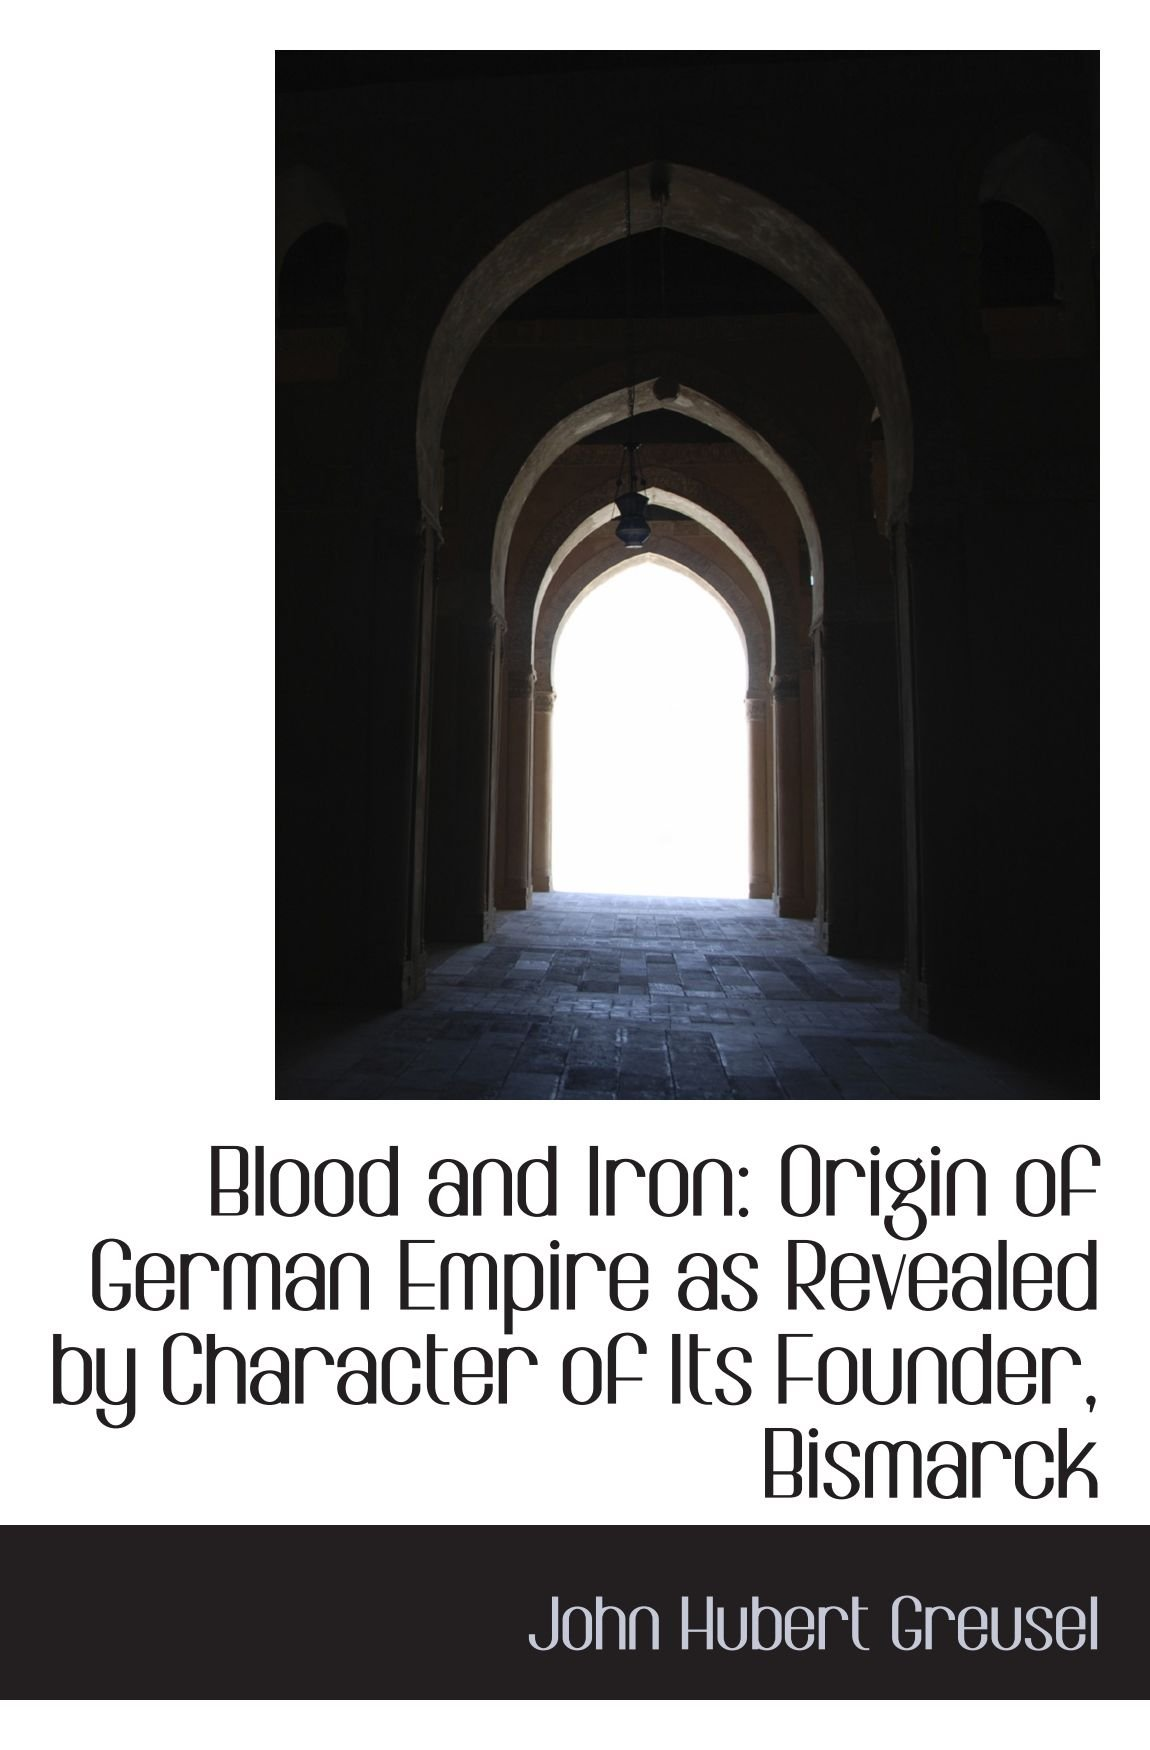 Blood and Iron: Origin of German Empire as Revealed by Character of Its Founder, Bismarck PDF